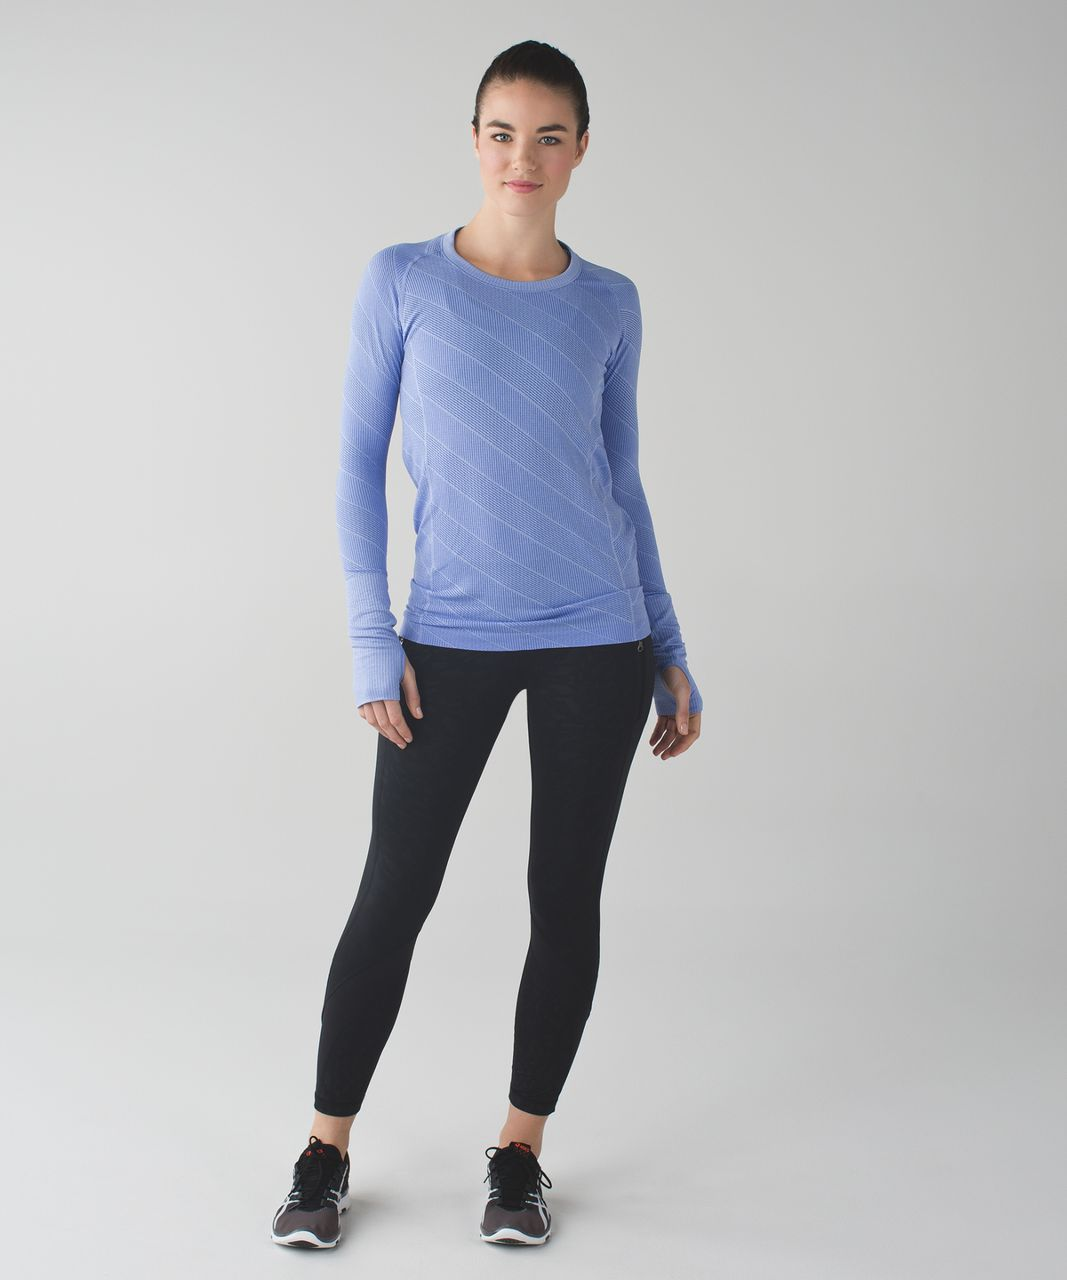 Lululemon Swiftly Tech Long Sleeve Crew - Heathered Lullaby (First Release)